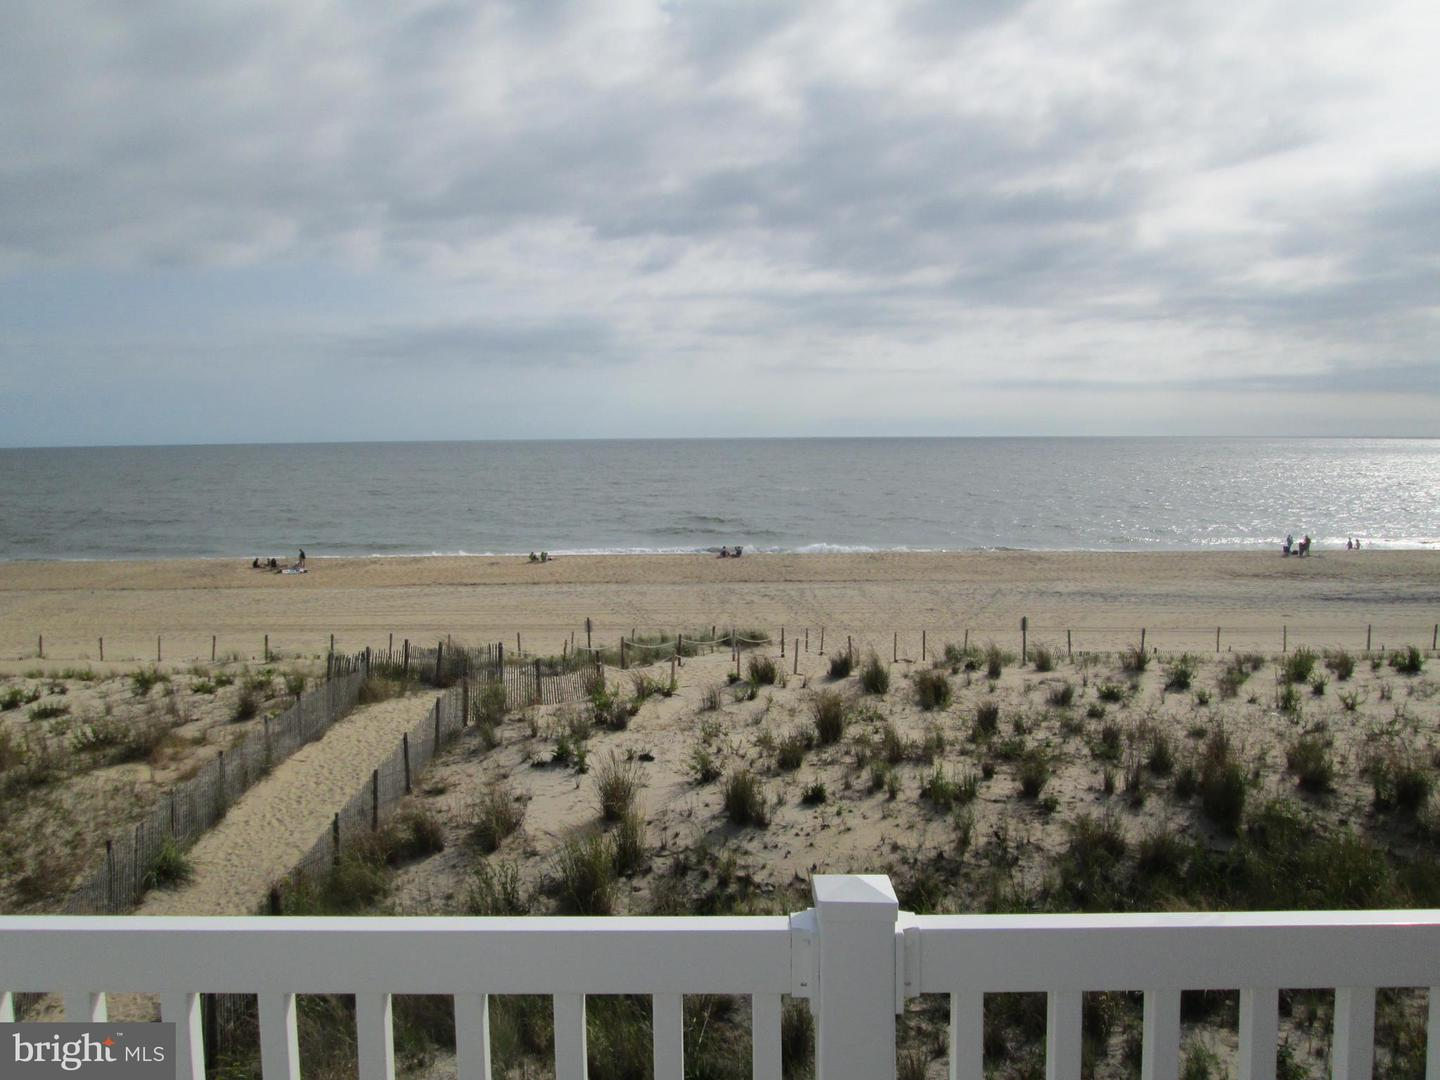 DESU148906-302085632384-2019-09-30-09-08-56 38799 Bunting Ave #1 | Fenwick Island, DE Real Estate For Sale | MLS# Desu148906  - Jack Lingo REALTOR